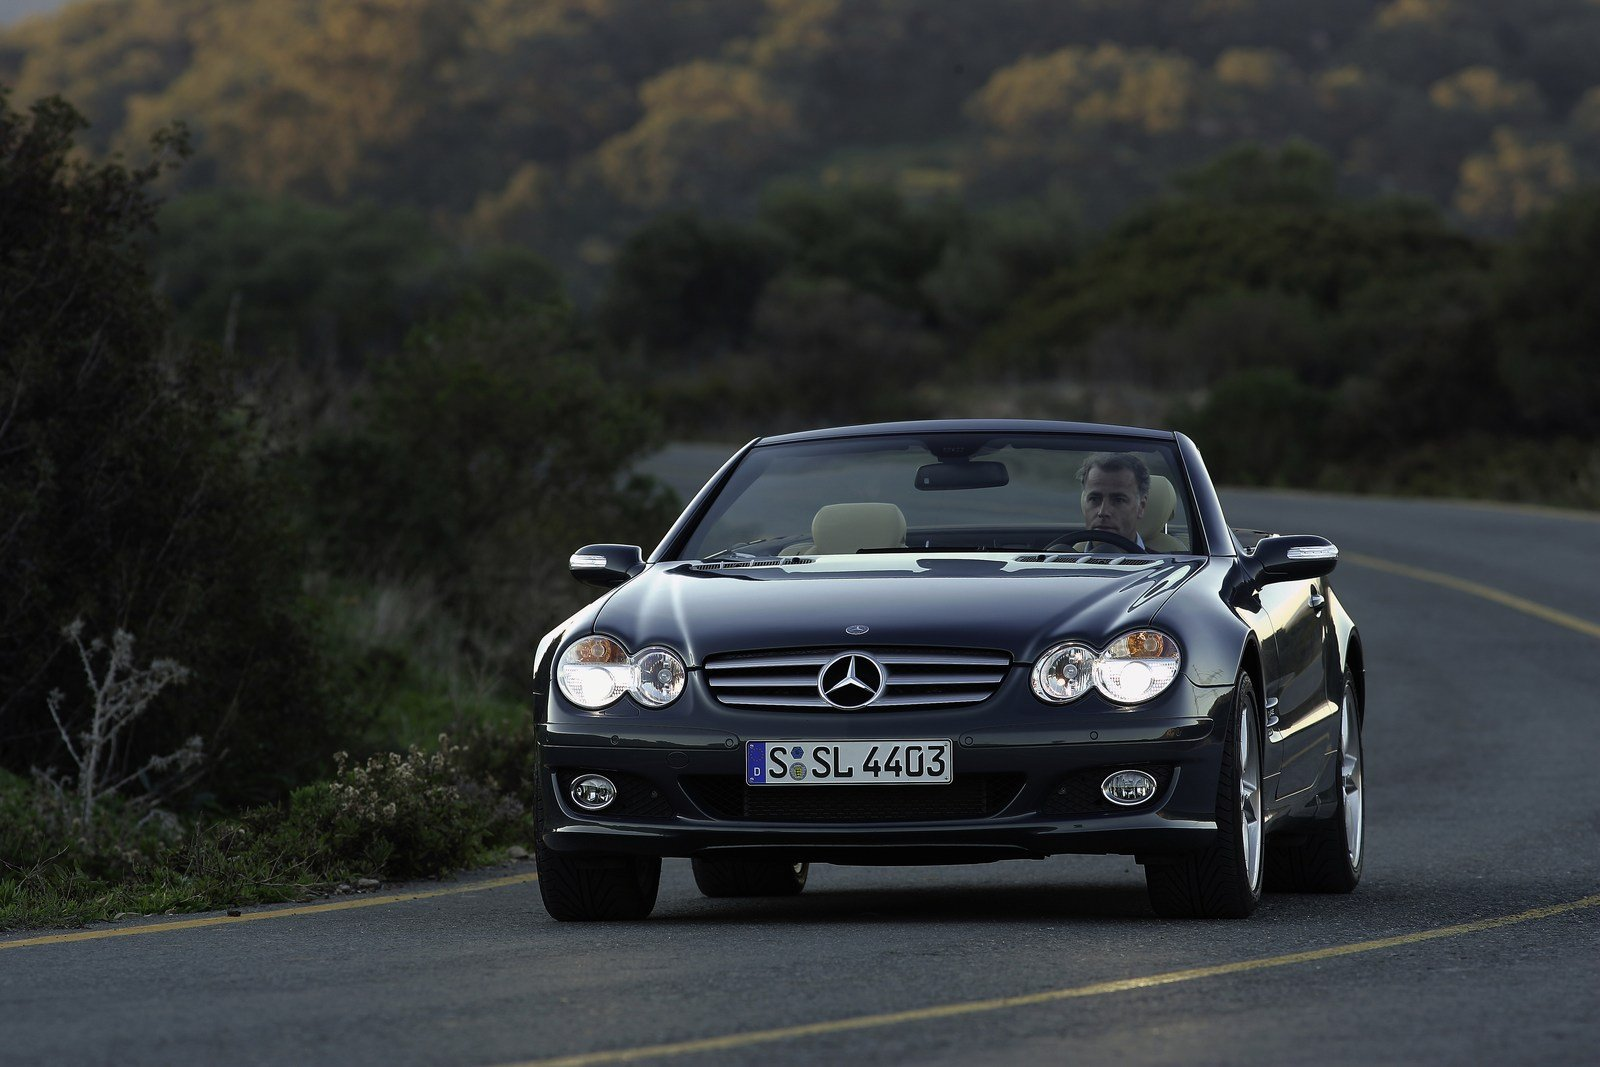 2007 mercedes sl class picture 42656 car review top for 2007 mercedes benz sl500